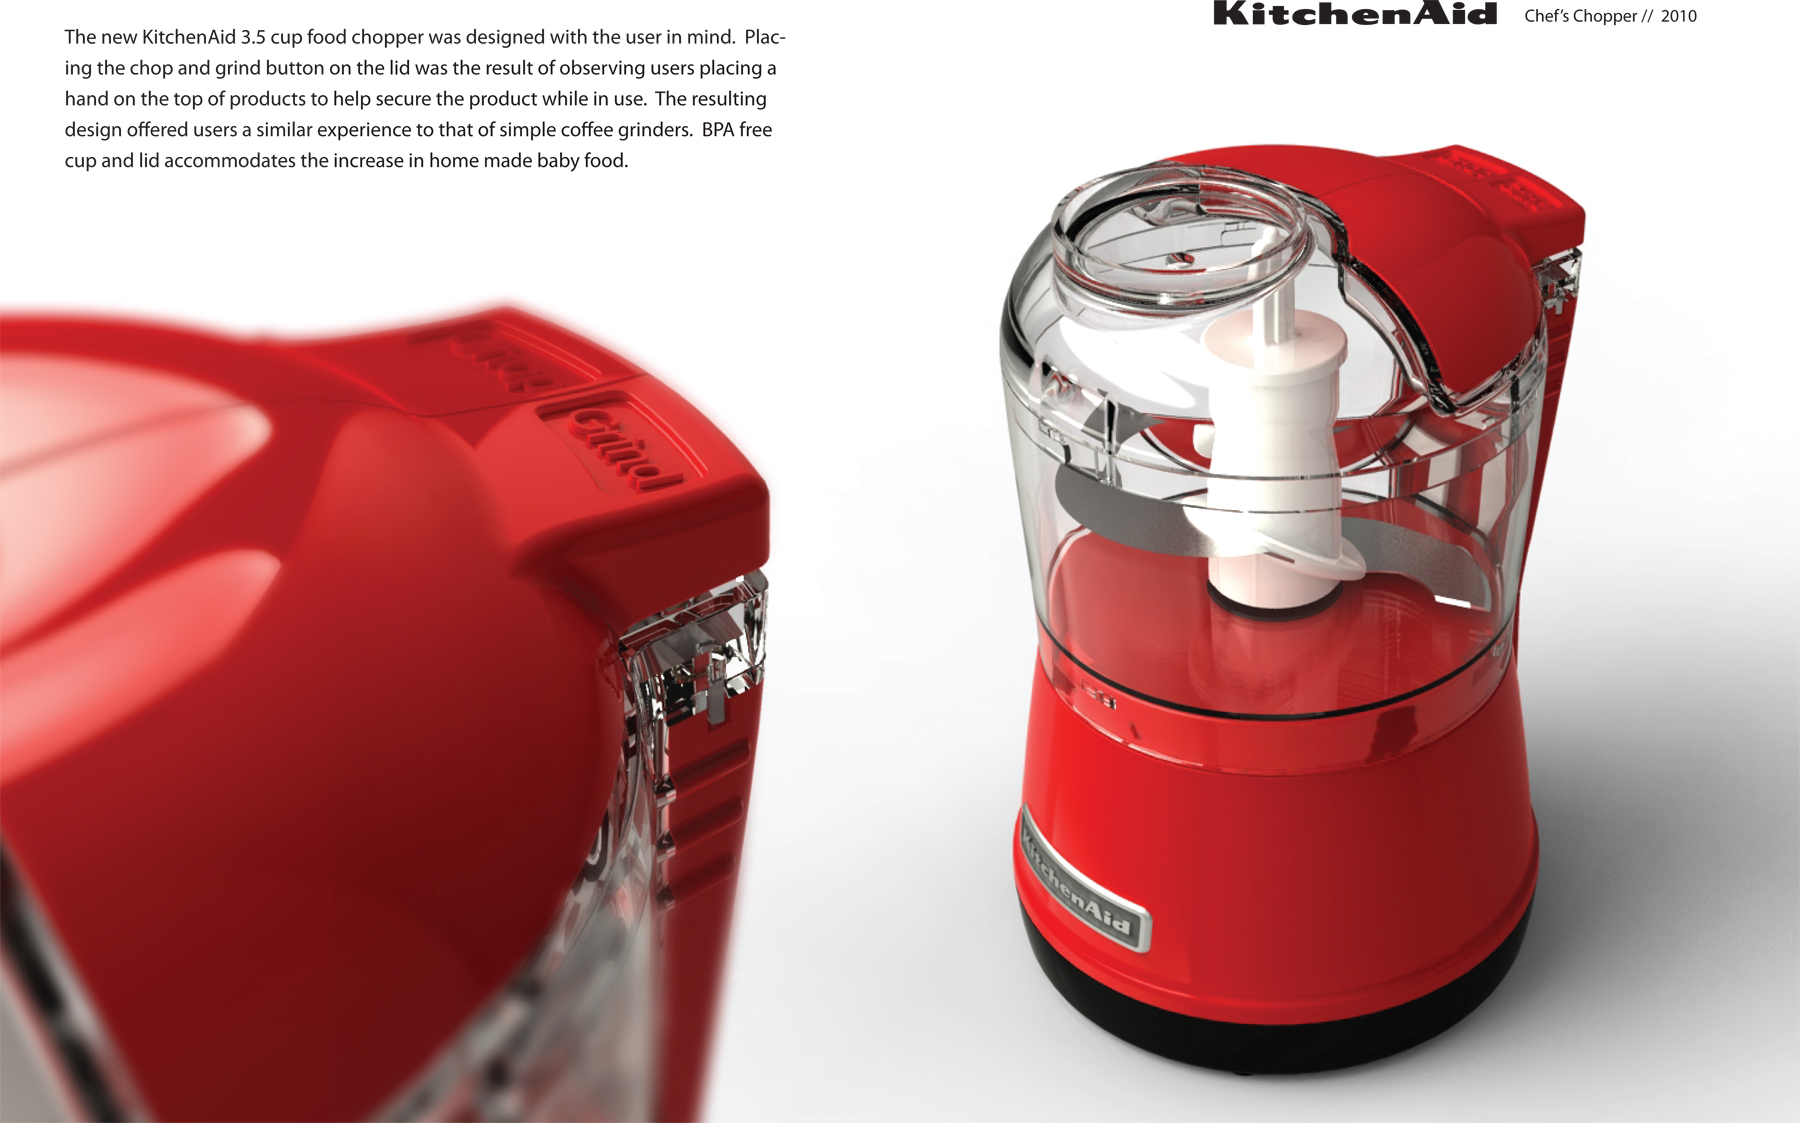 Kitchenaid Vegetable Chopper consumer productsmatt czach at coroflot